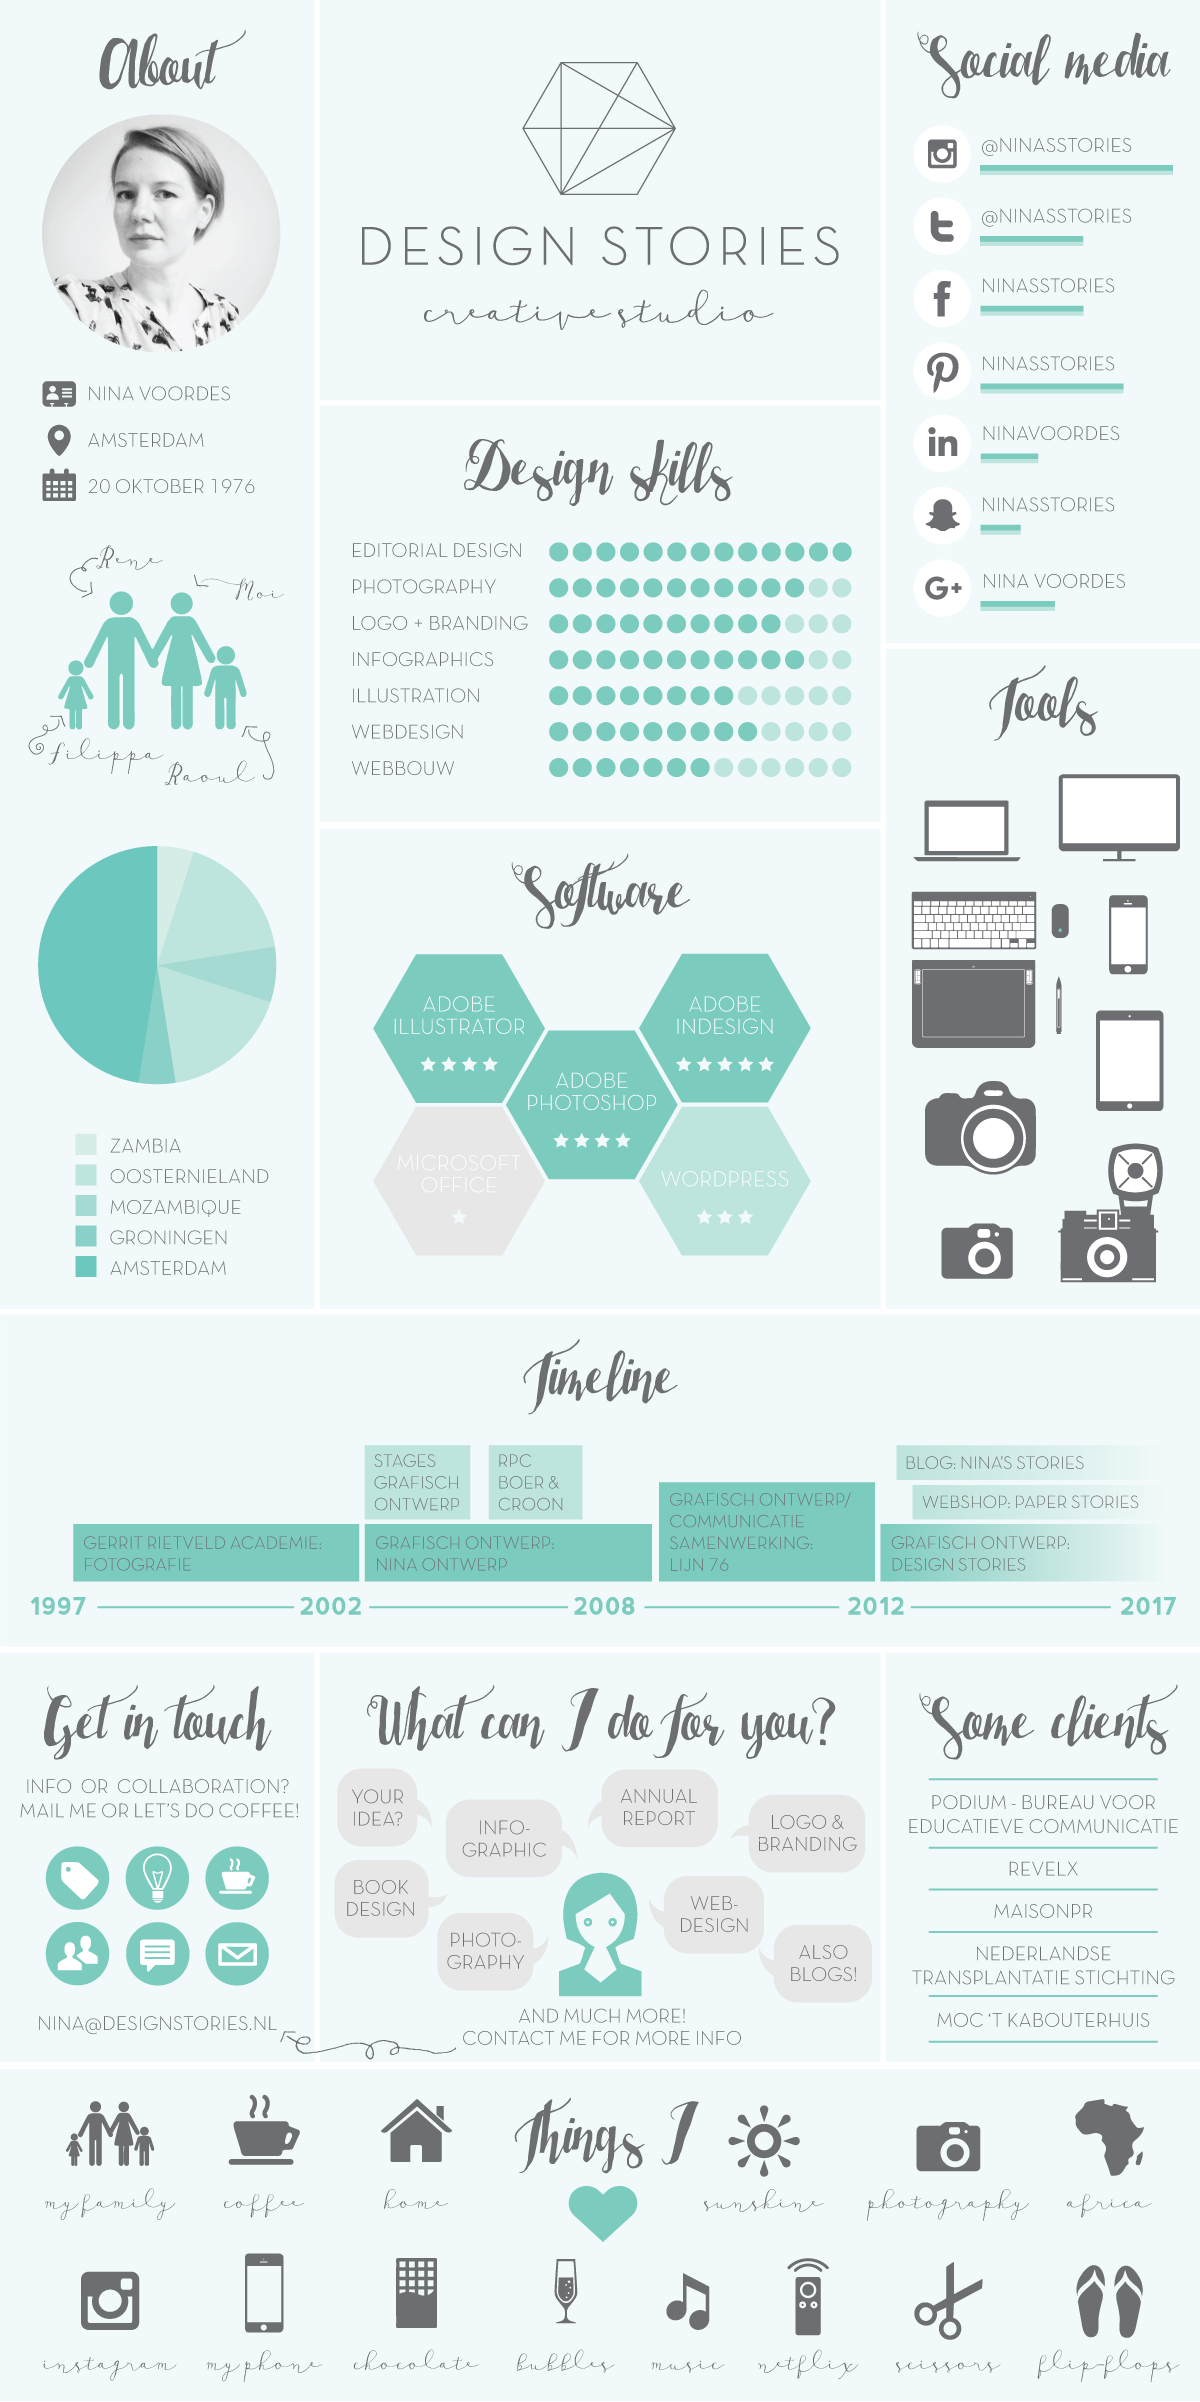 DESIGN stories infographic